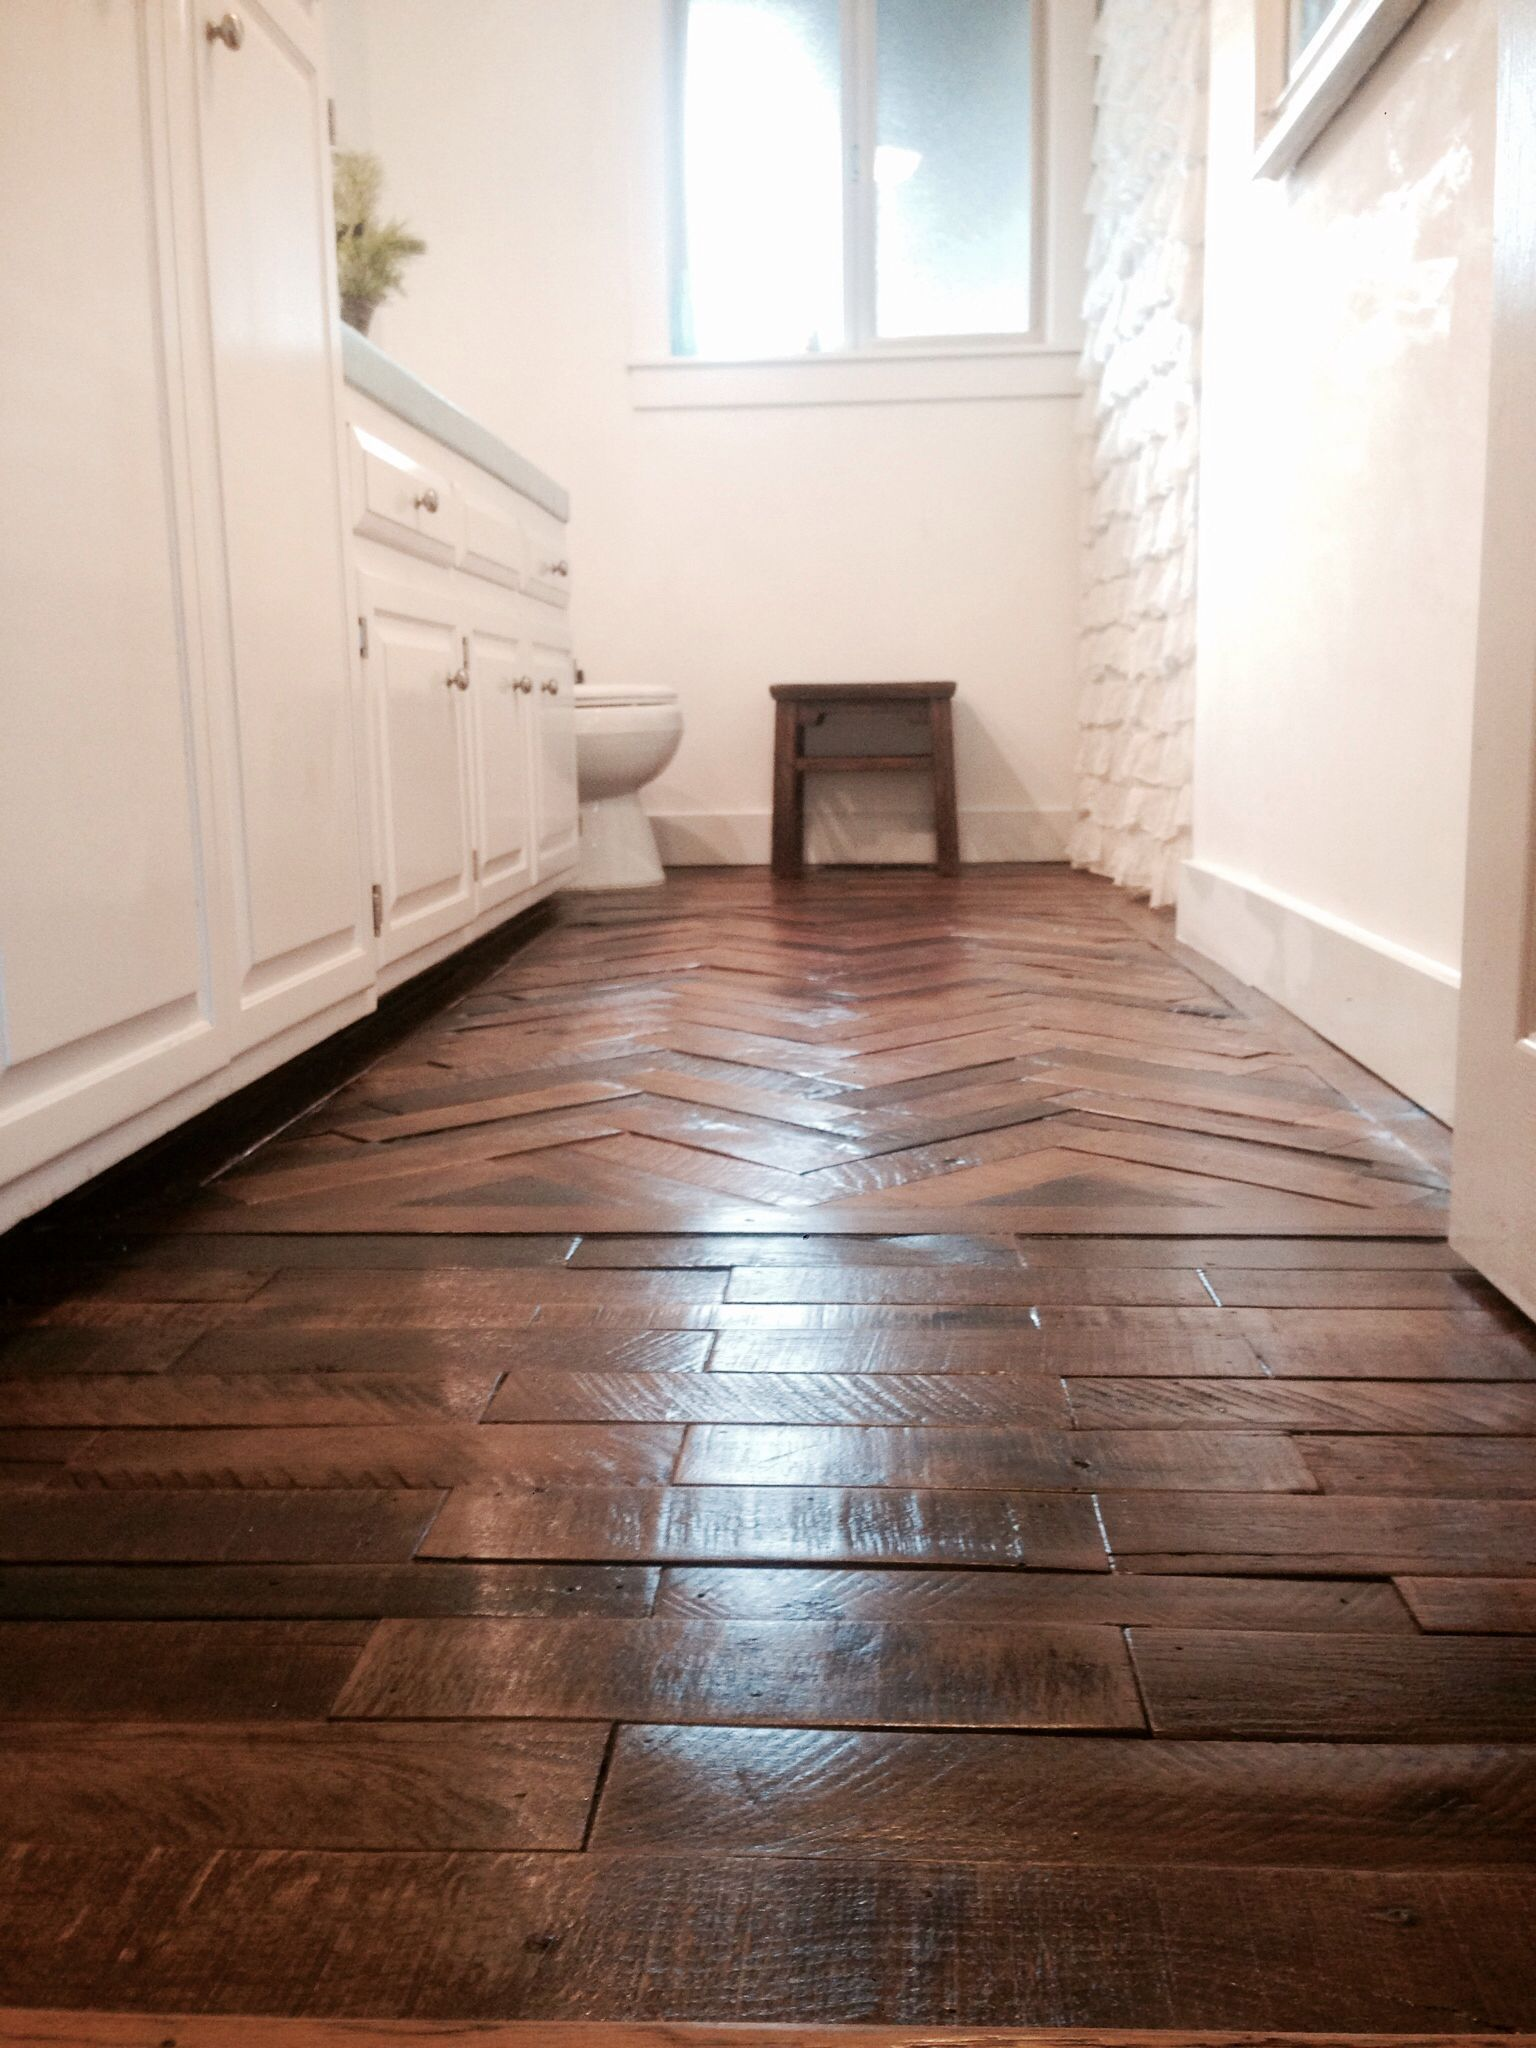 Wood floor made from reclaimed shipping pallets.